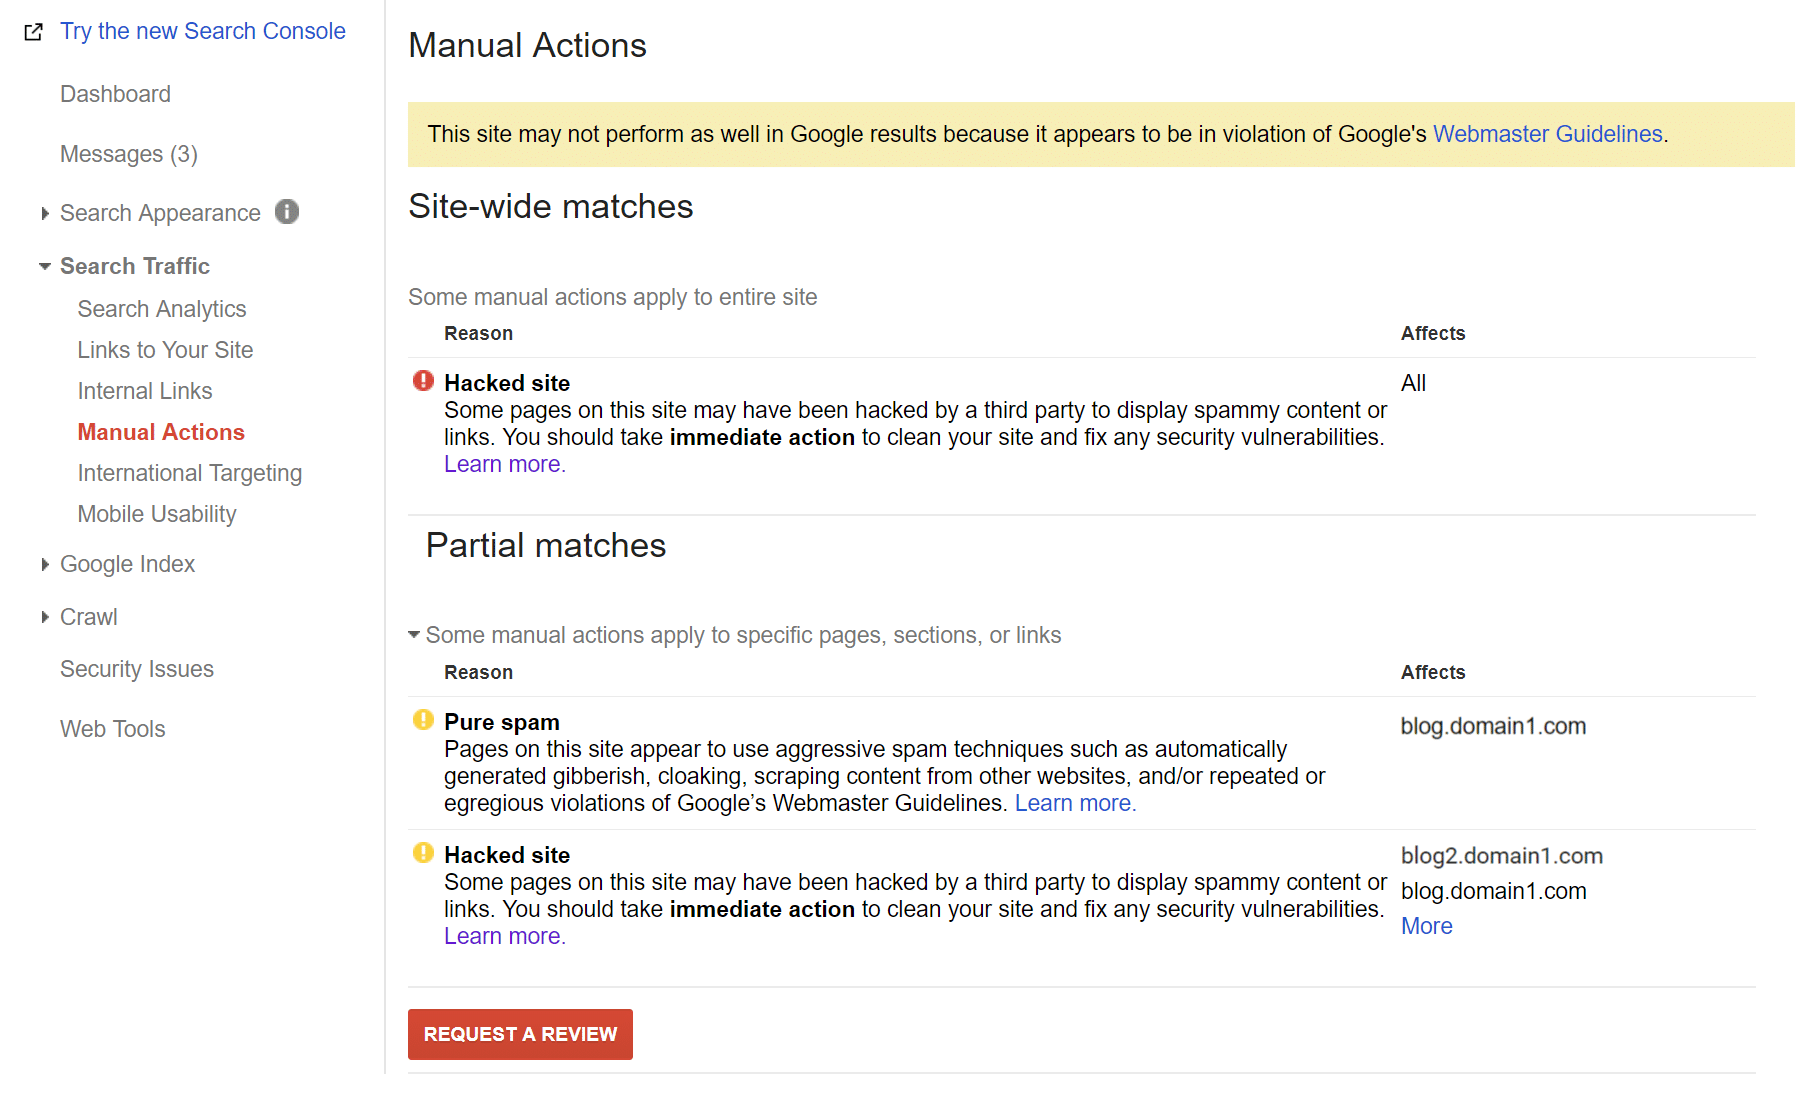 Google Search Console Manual Action